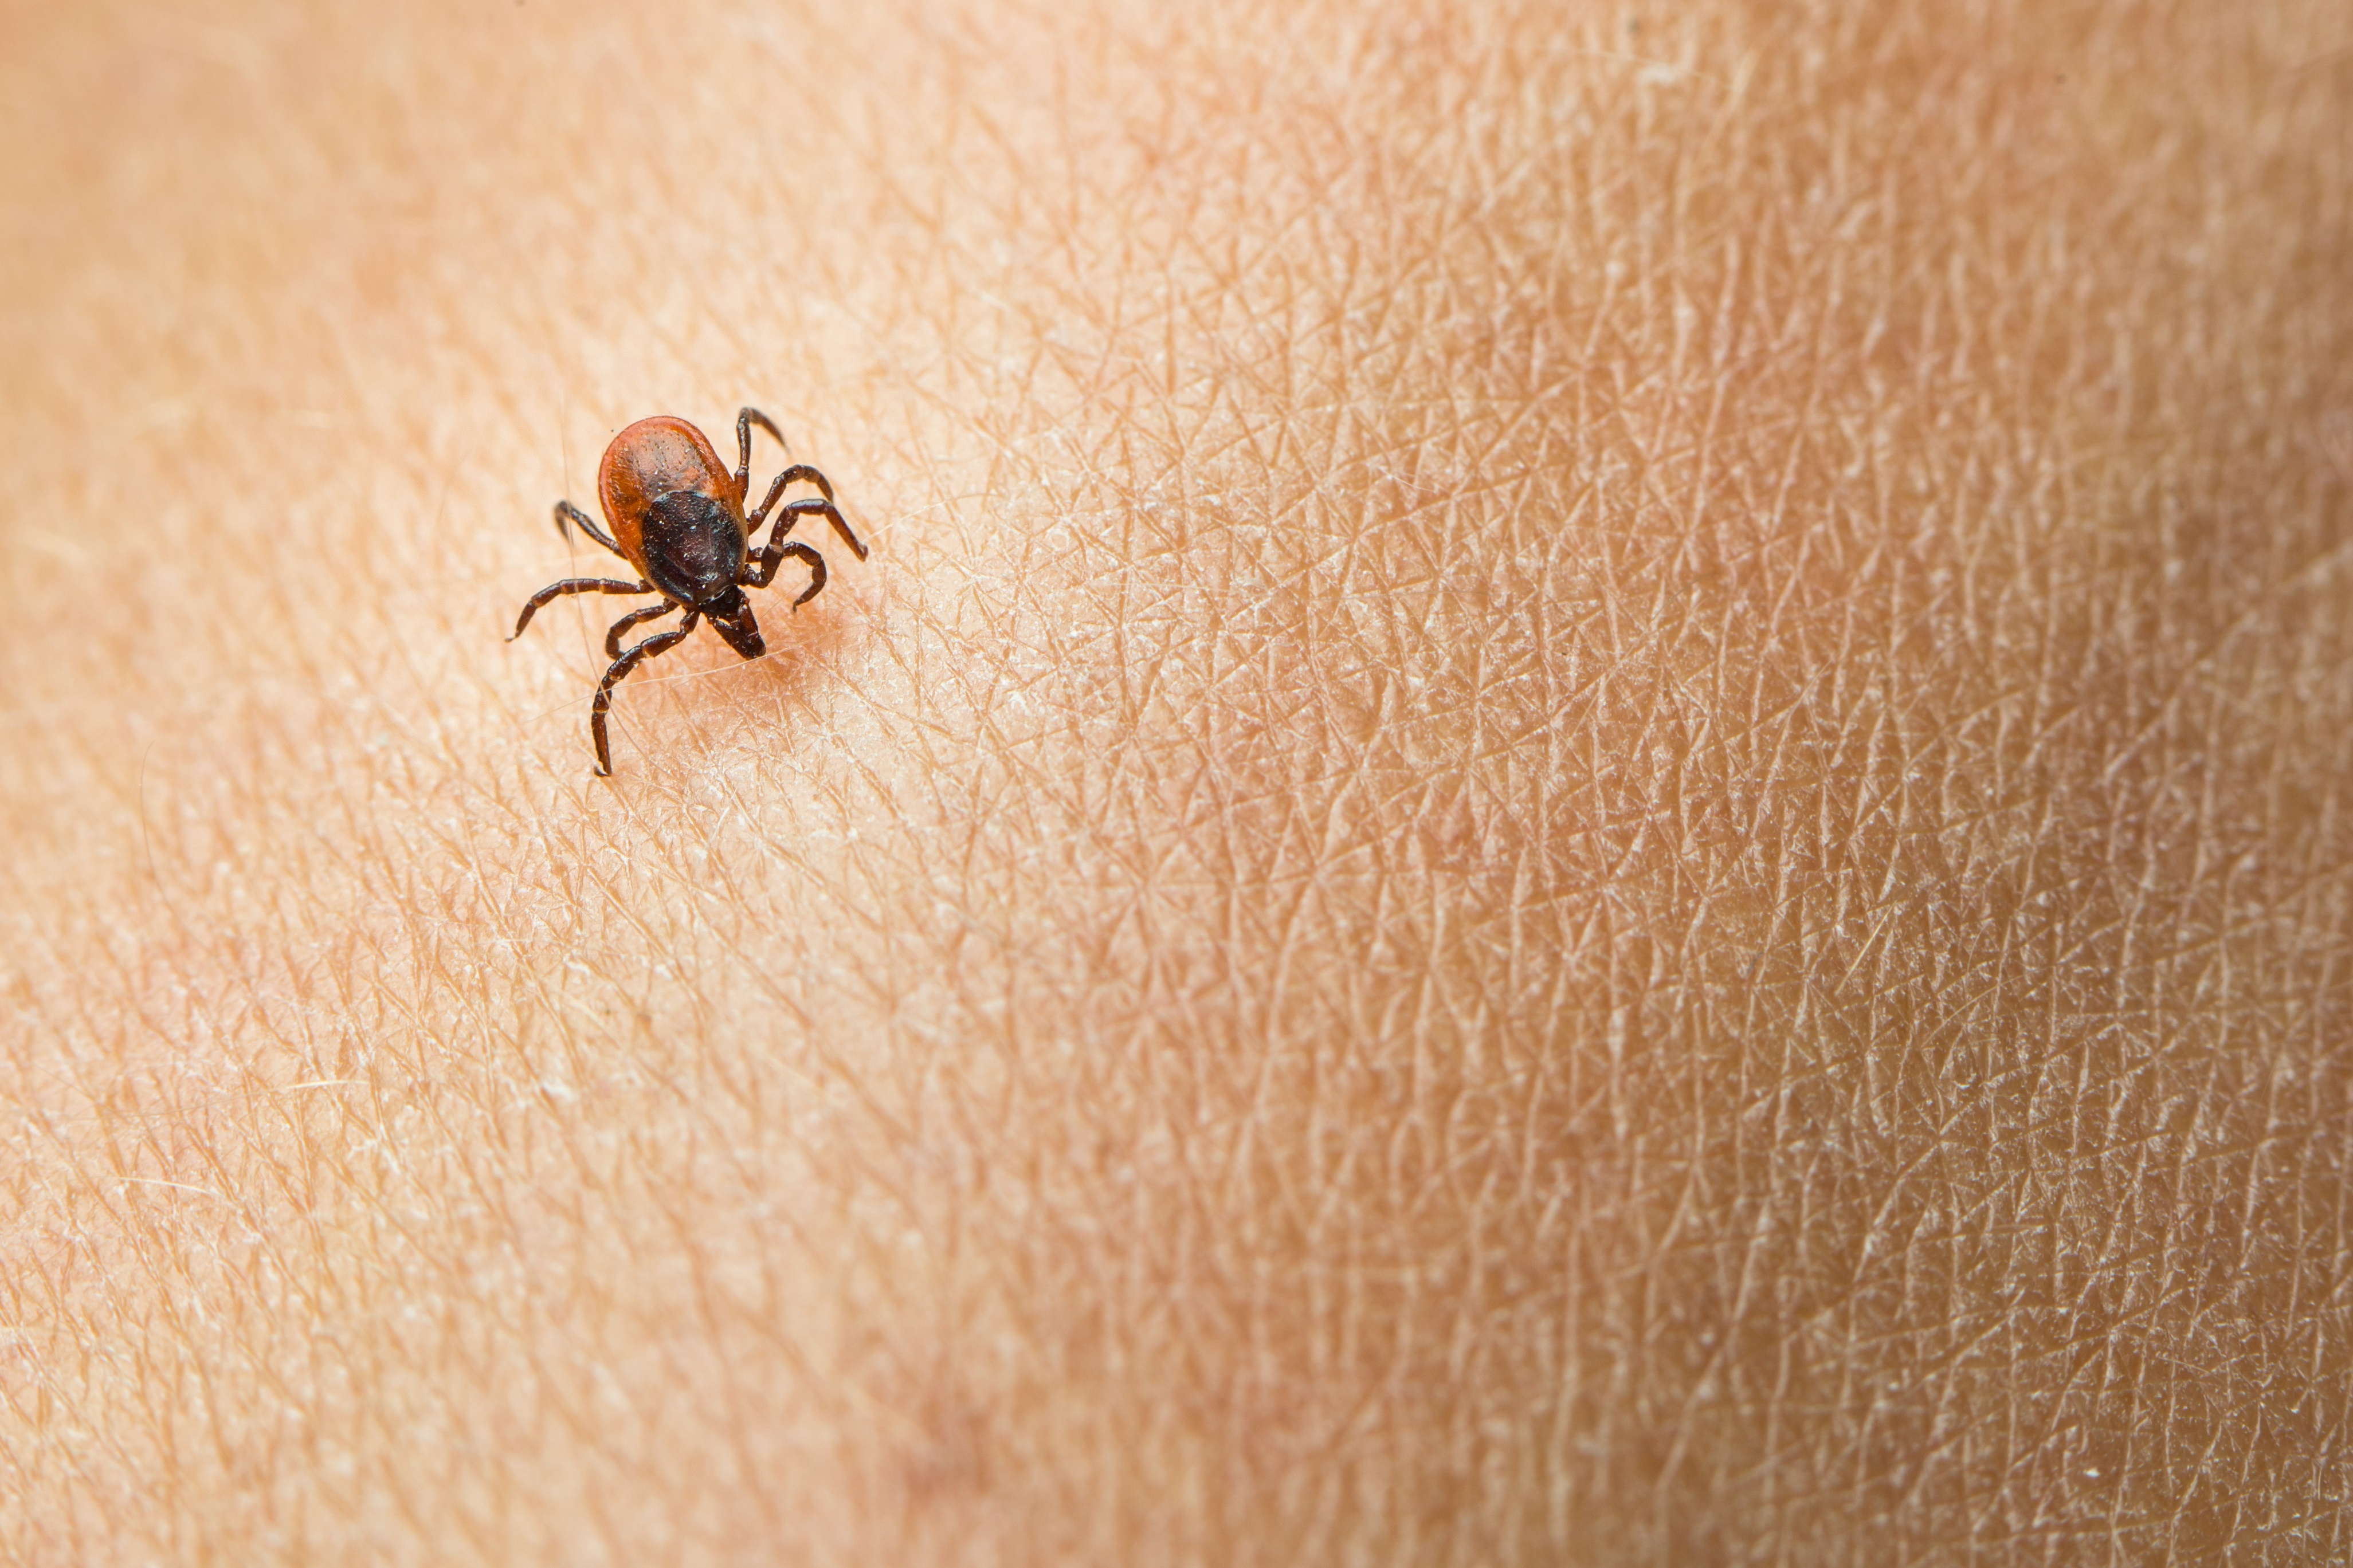 Tick Talk: The Life Cycle of the Tick - Featured Image